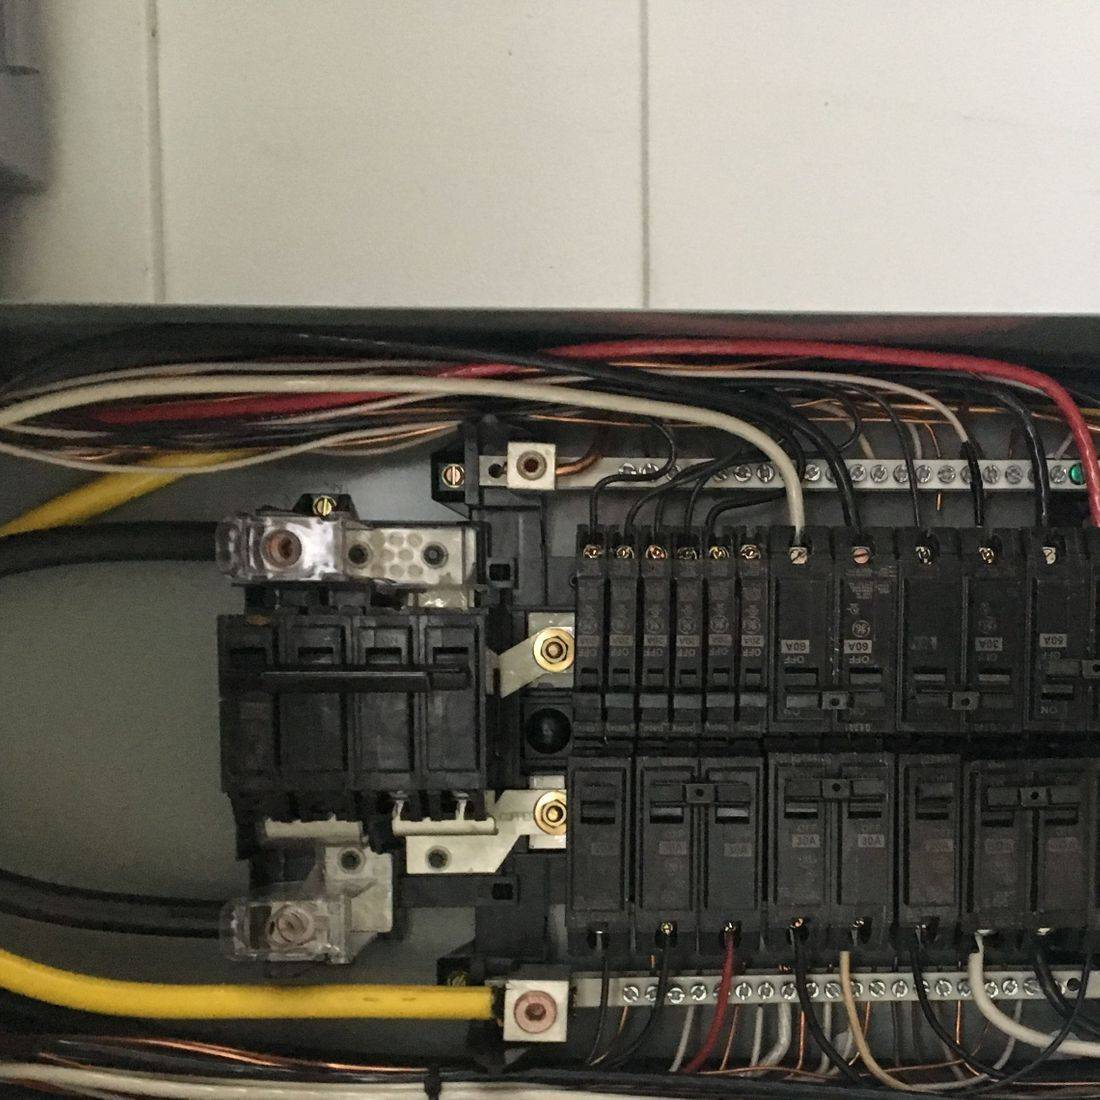 100 amp Paneel upgraded to this 200 amp panel with minimal power outage!